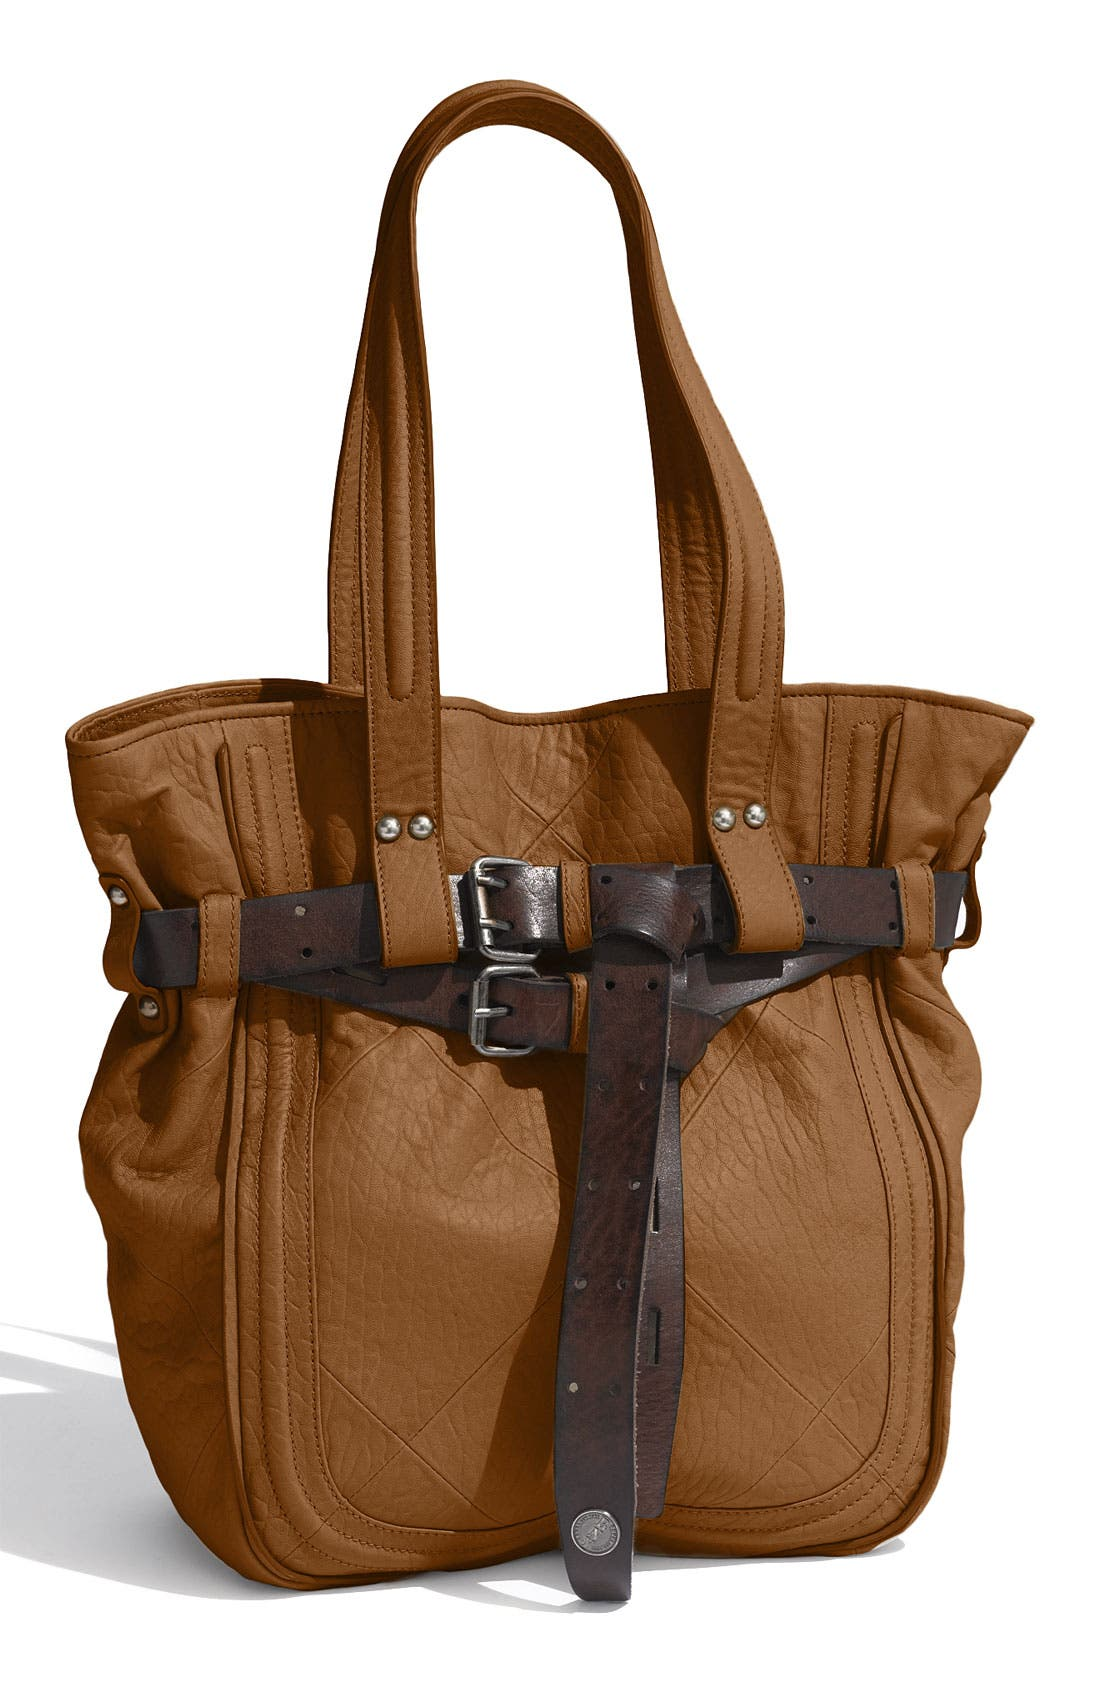 Revel NY 'Delancey' Belted 2-Tone Leather Tote